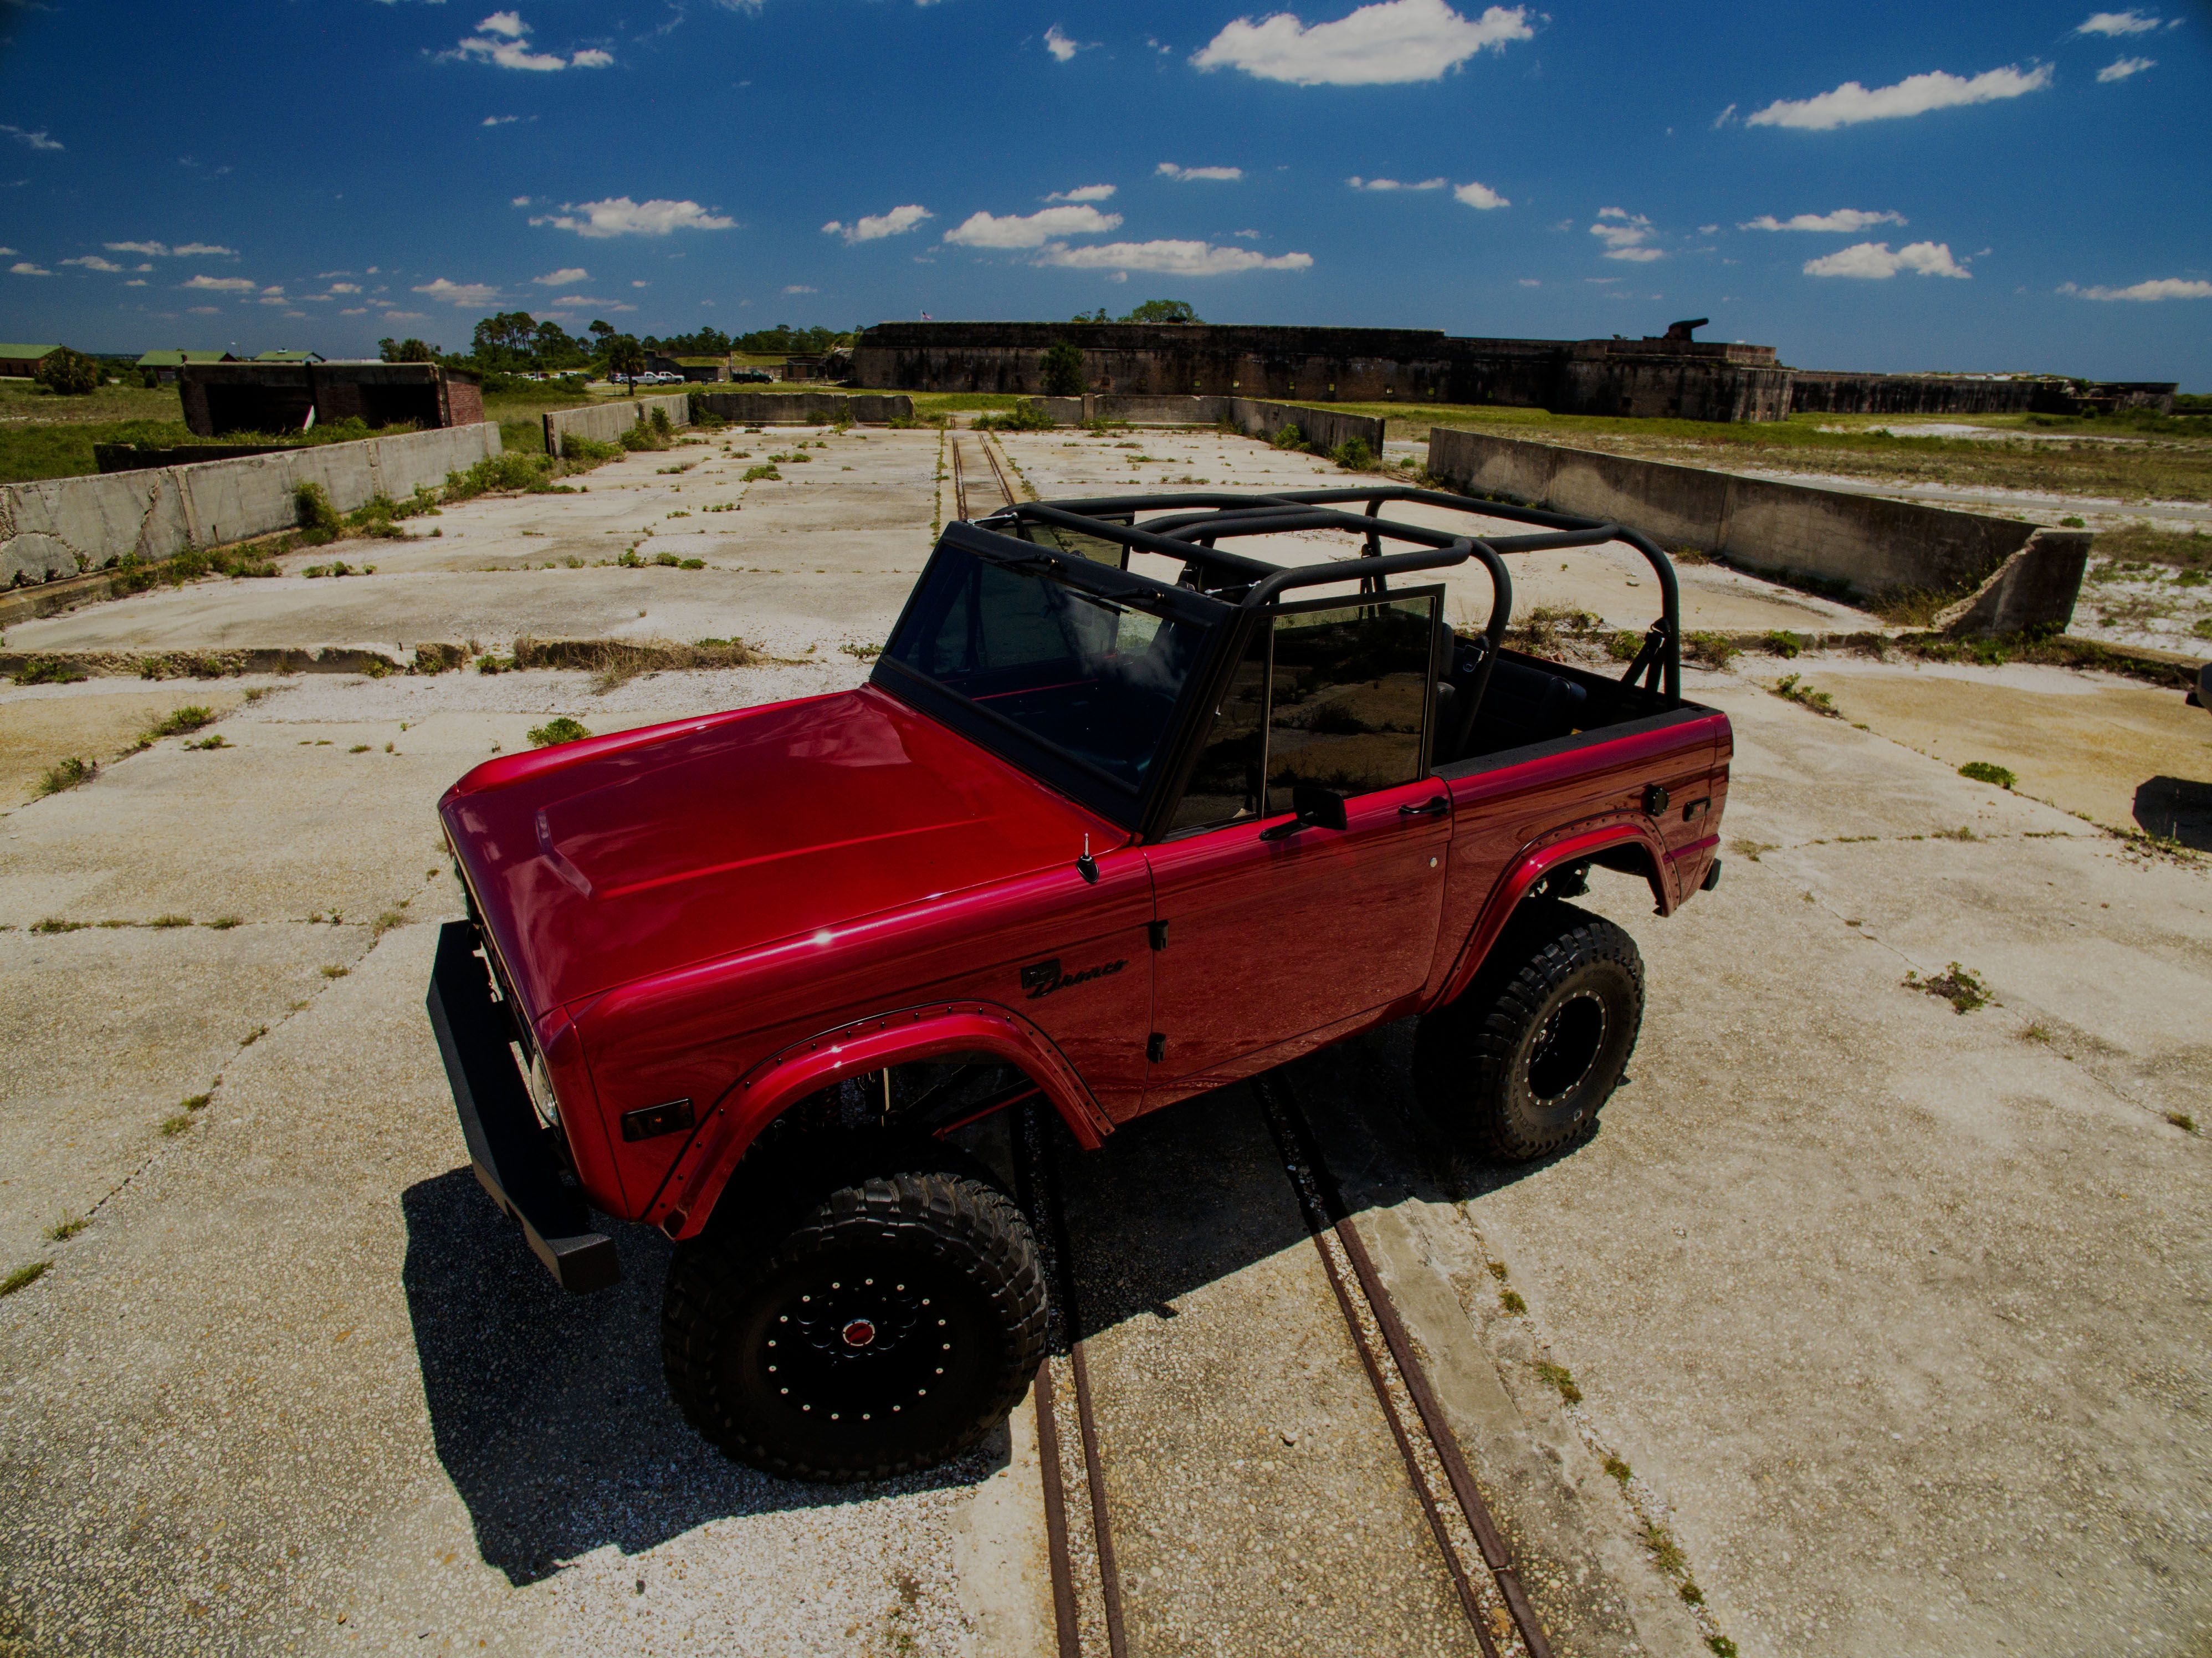 1976 Classic Ford Bronco for Sale - $184,000   Classic ford broncos ...